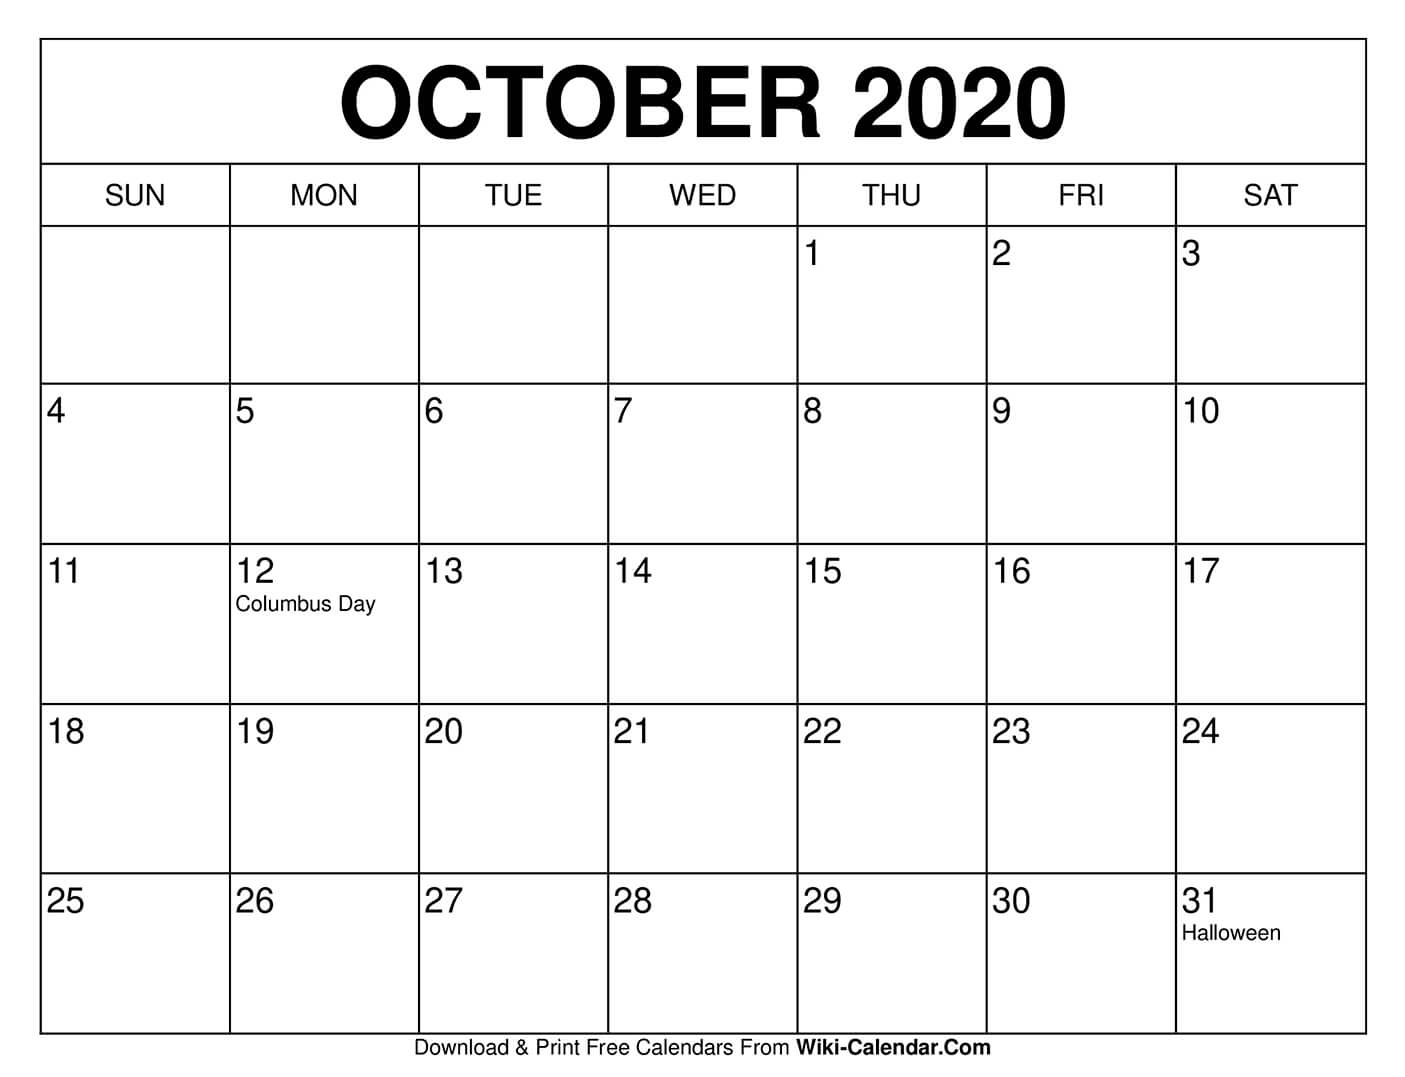 Free Printable October 2020 Calendars pertaining to 8.5 X 11 Printable 2020 Calendar